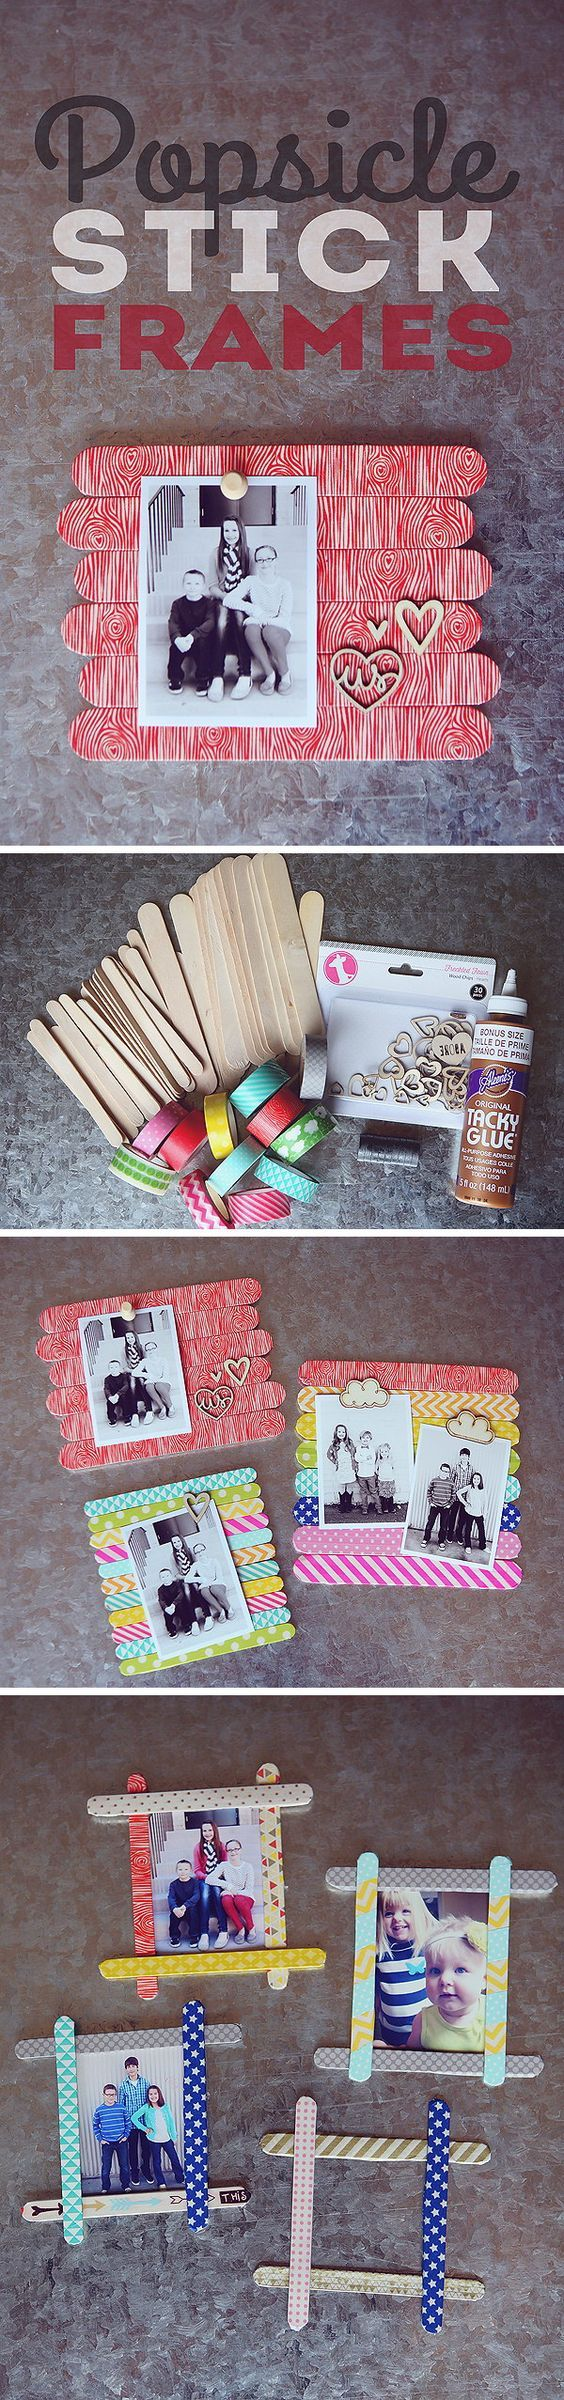 DIY gift ideas for mom from kids - cute DIY picture frame - easy craft gift for kids to make                                                                                                                                                                                 More: